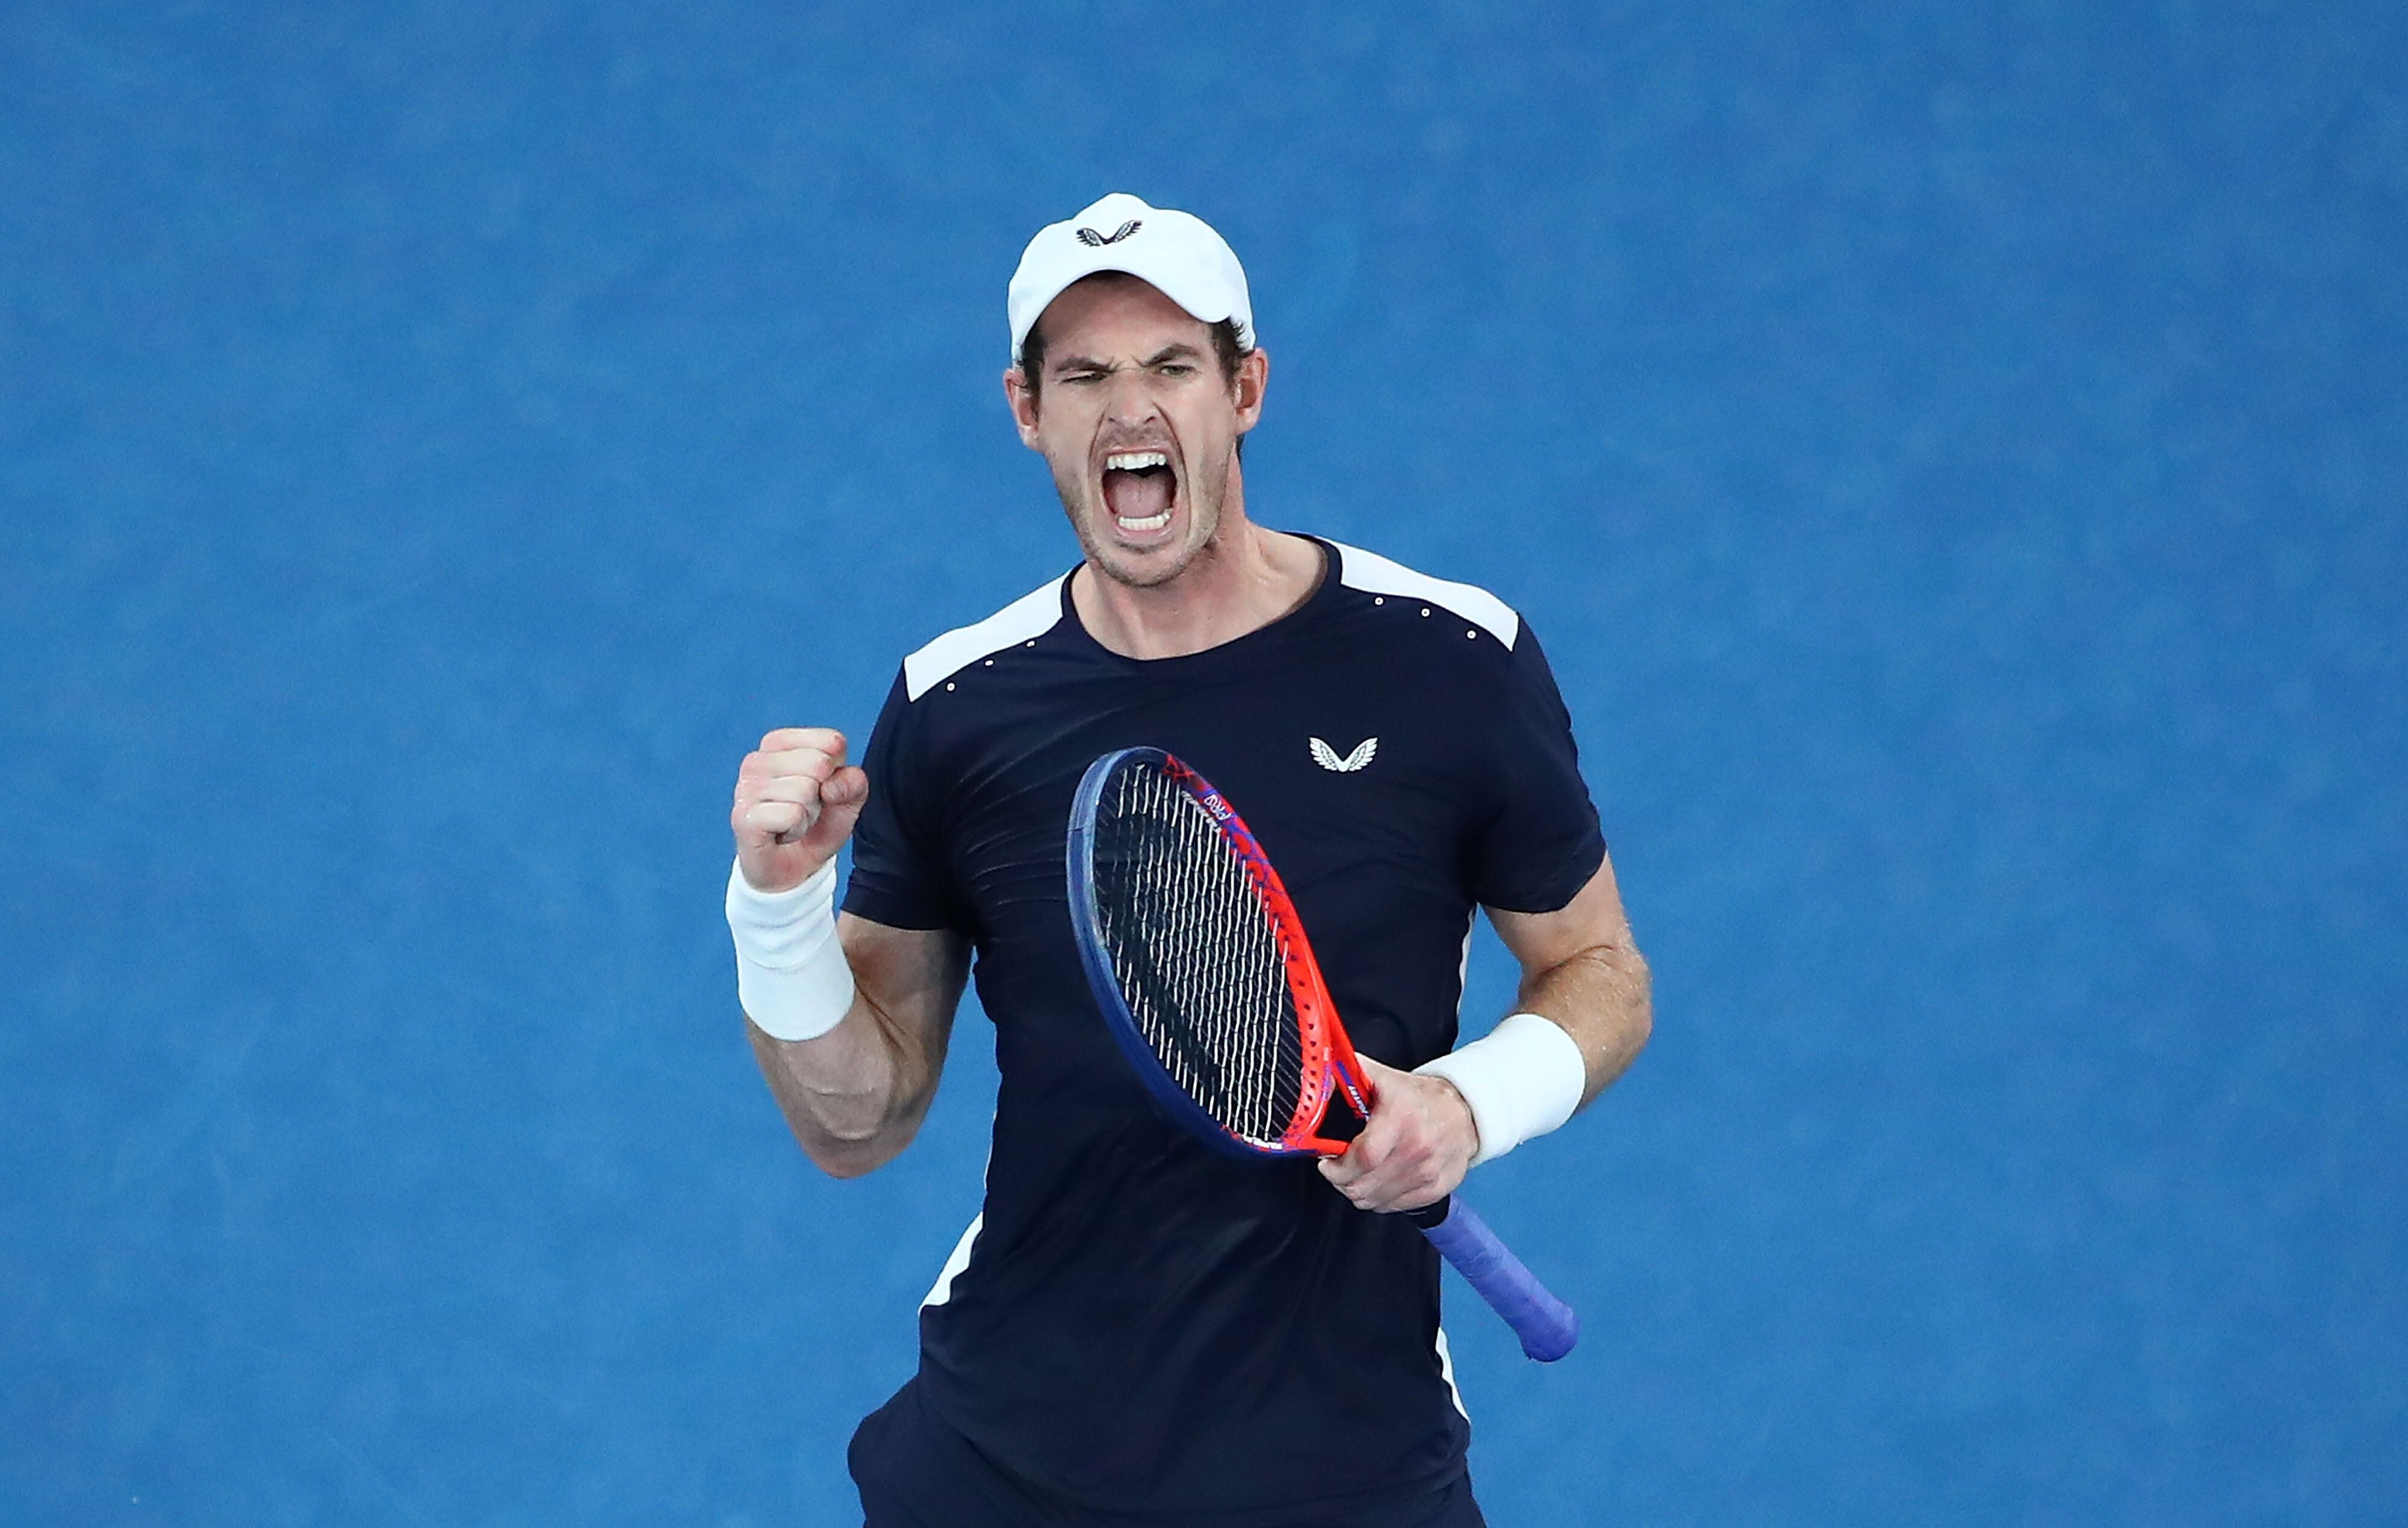 MELBOURNE, AUSTRALIA - JANUARY 14:  Andy Murray of Great Britain celebrates winning the third set in his first round match against Roberto Bautista Agut of Spain during day one of the 2019 Australian Open at Melbourne Park on January 14, 2019 in Melbourne, Australia. (Photo by Scott Barbour/Getty Images)